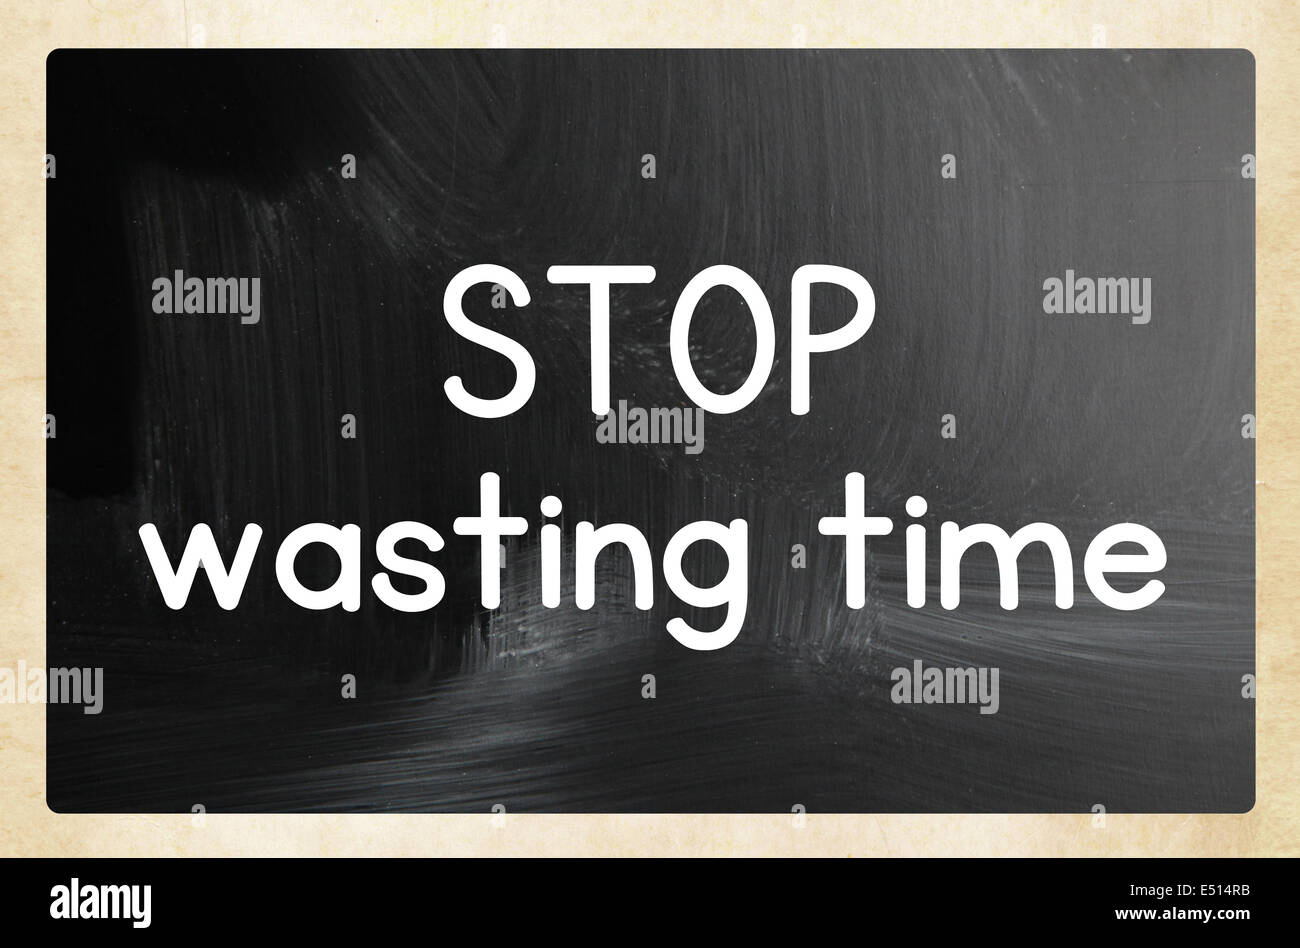 stop wasting time - Stock Image